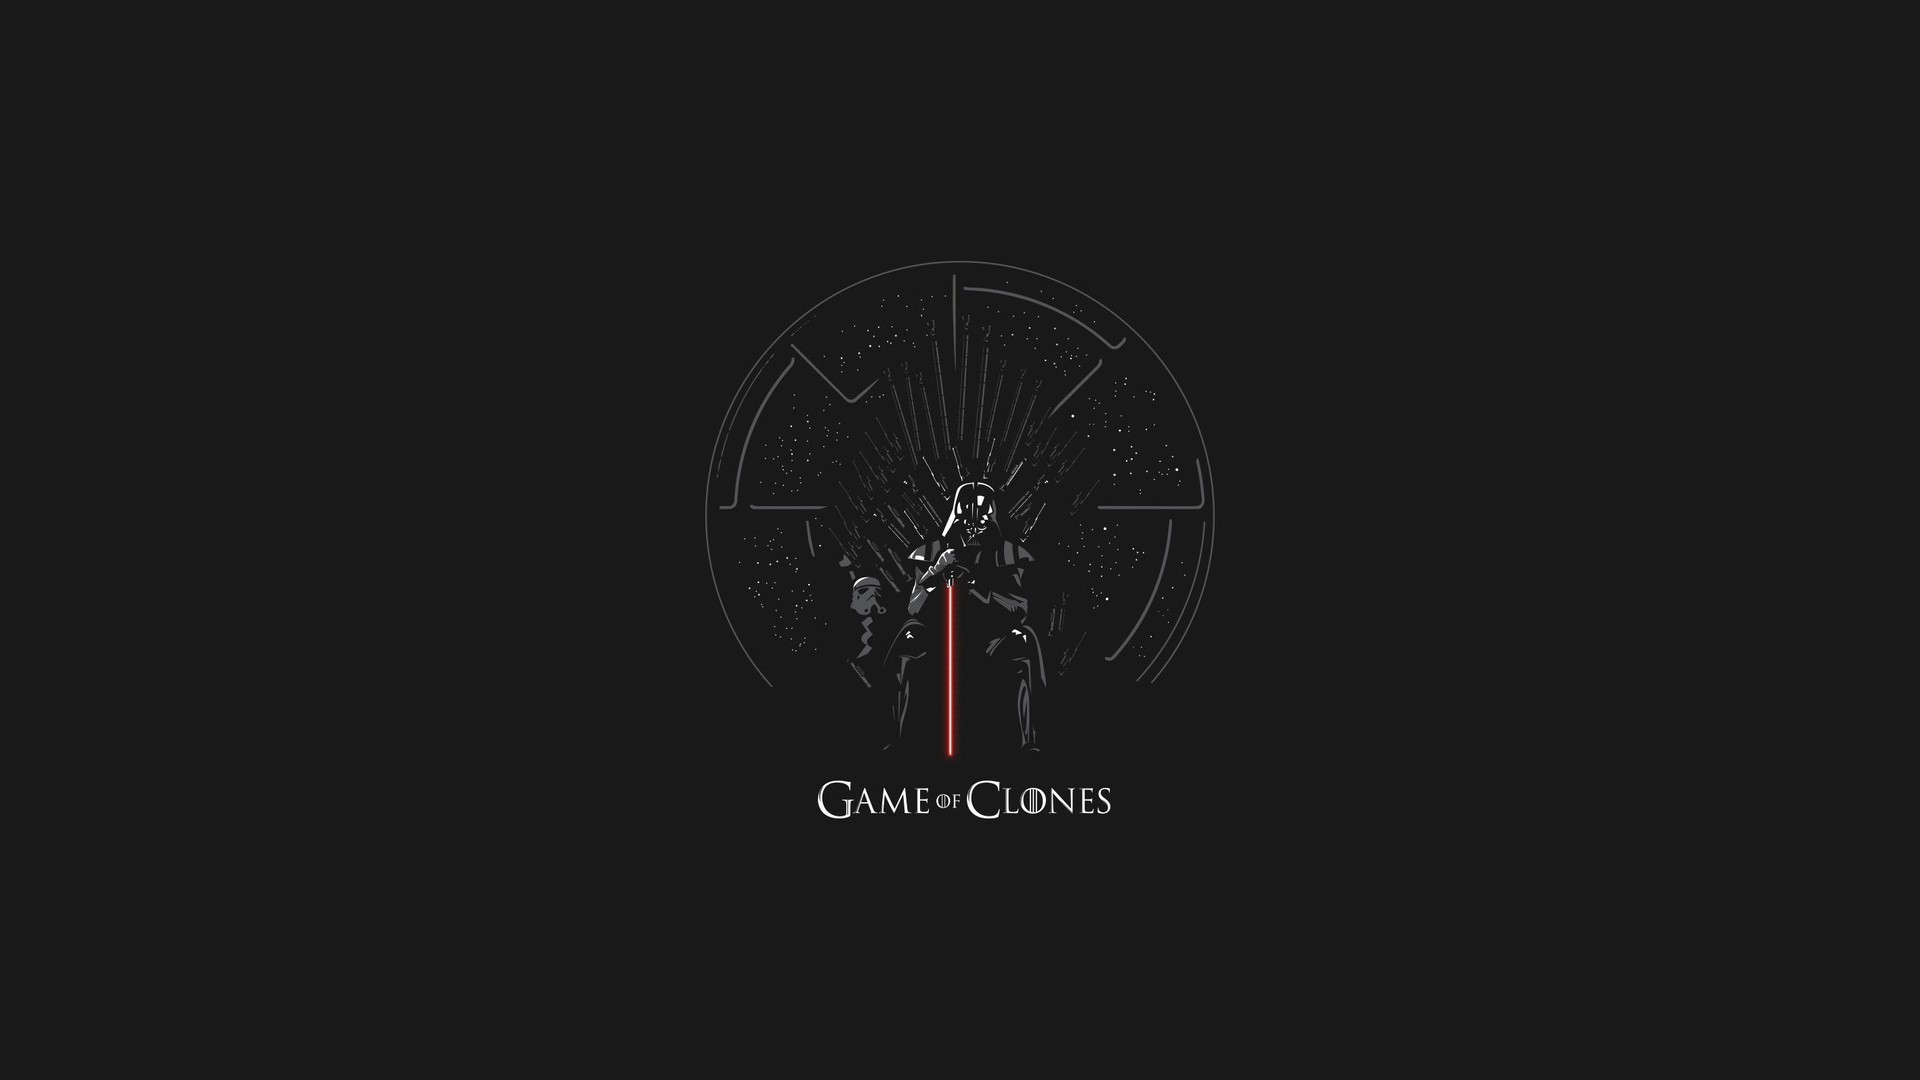 General 1920x1080 Star Wars Game of Thrones crossover Darth Vader minimalism Iron Throne mix up